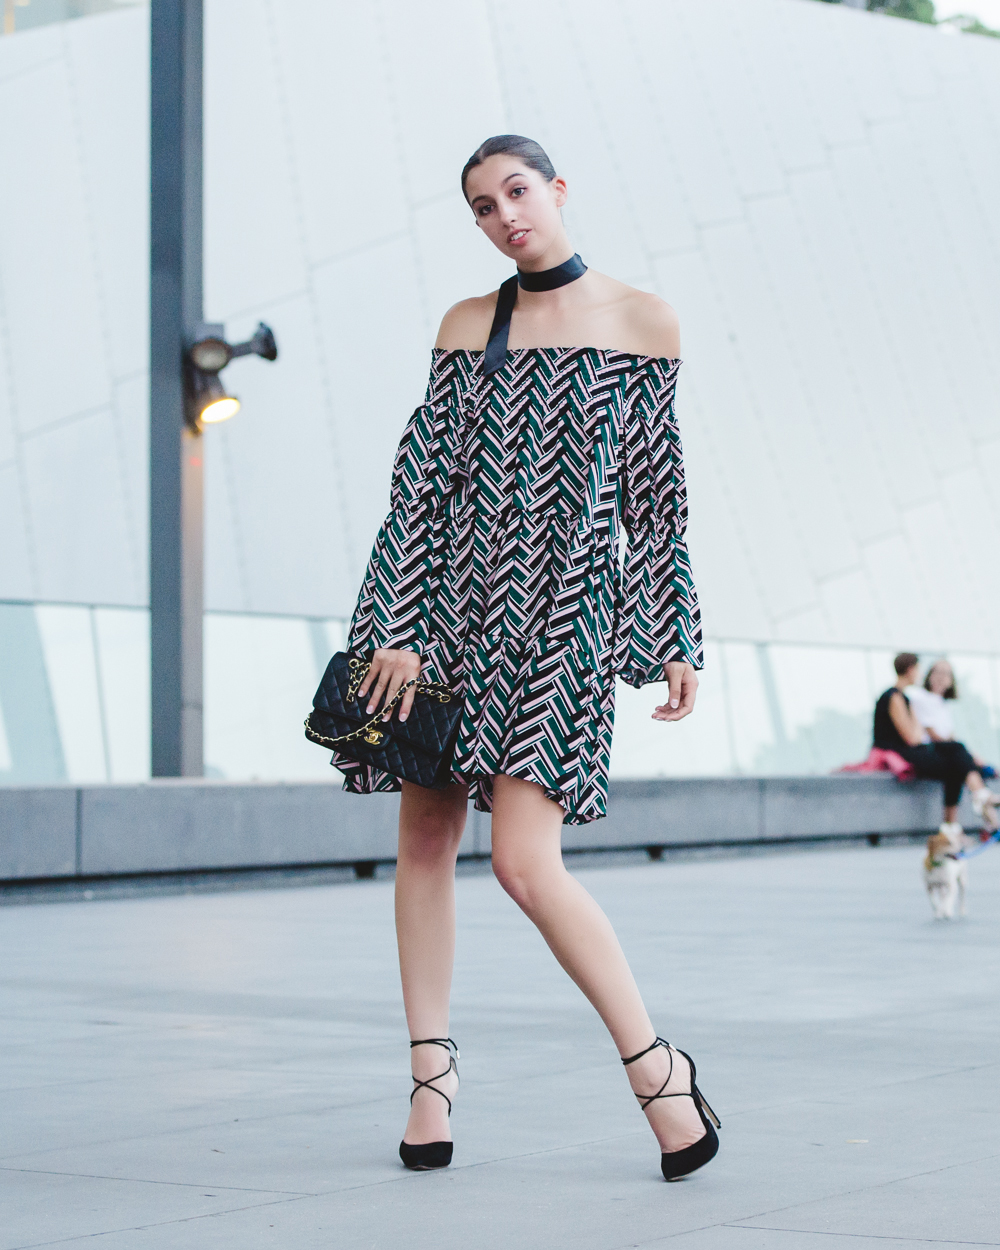 melbourne-street-style-vamff16-kwoo-71